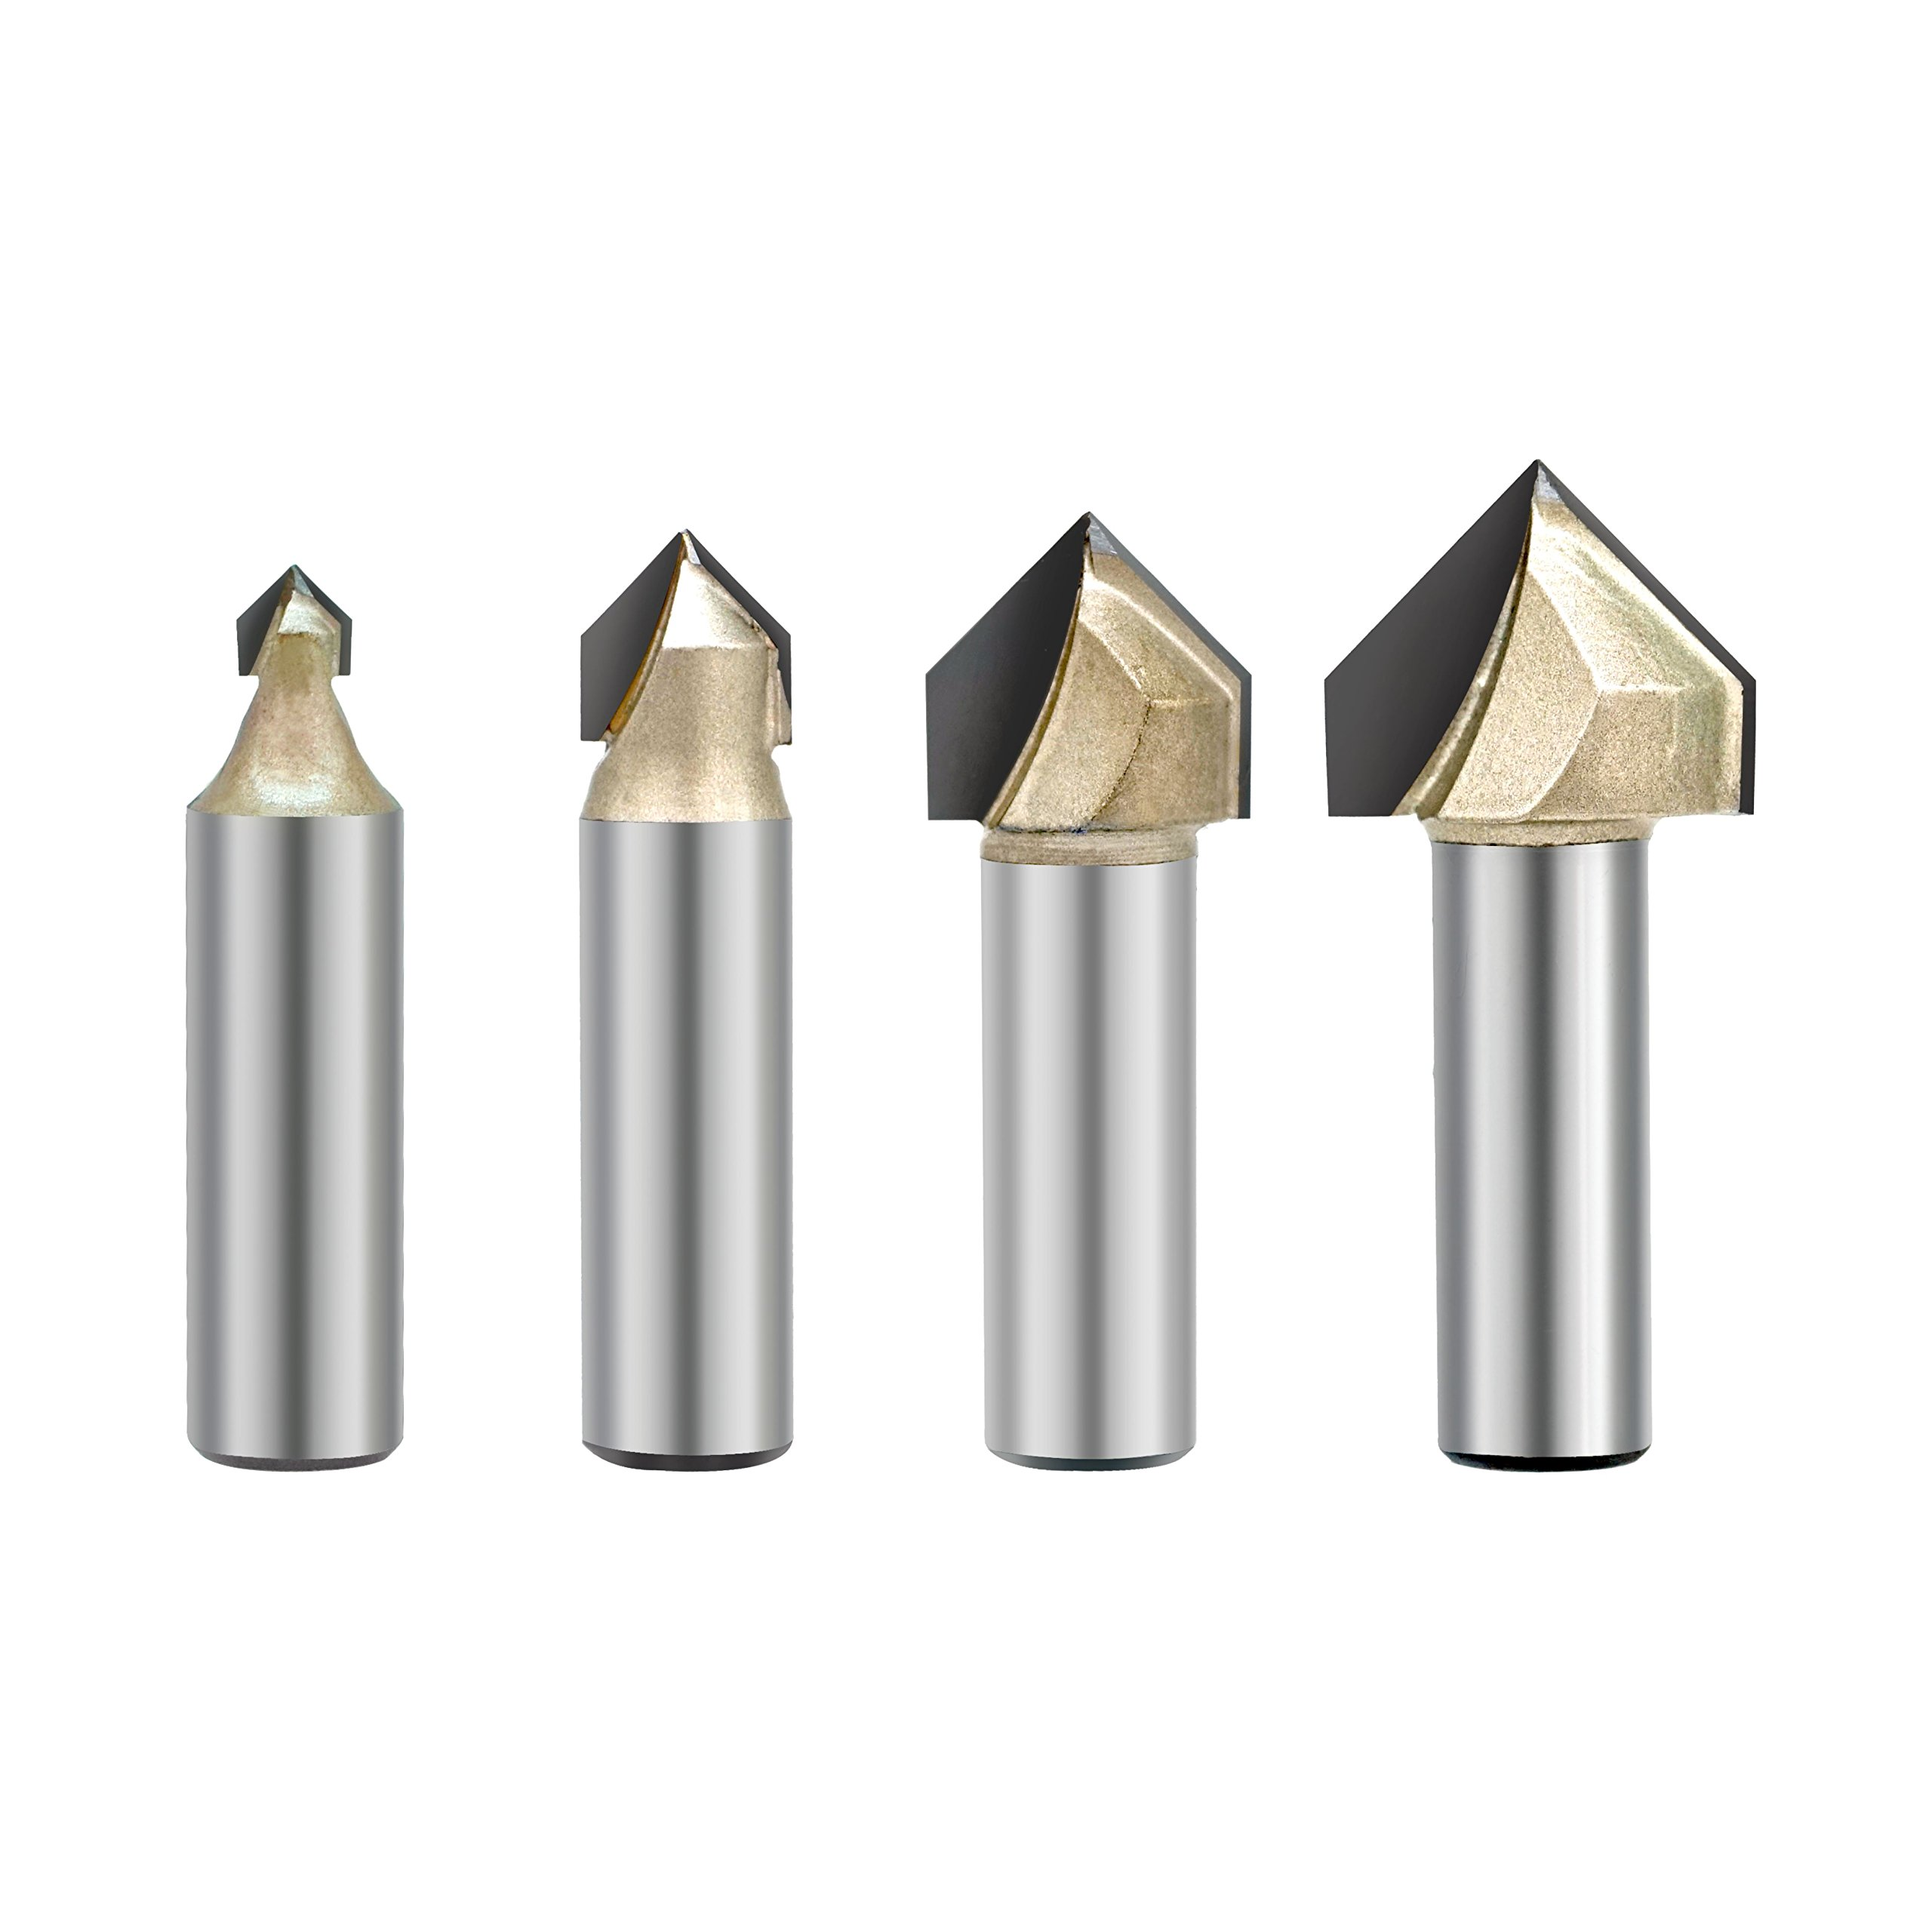 4PCS 90-Degree V Groove Router Bit, Gazeto Titanium Coated Carbide-Tipped 2-Flute CNC Engraving Bit Woodworking Chamfer Bevel Cutter, 1/2-Inch Shank